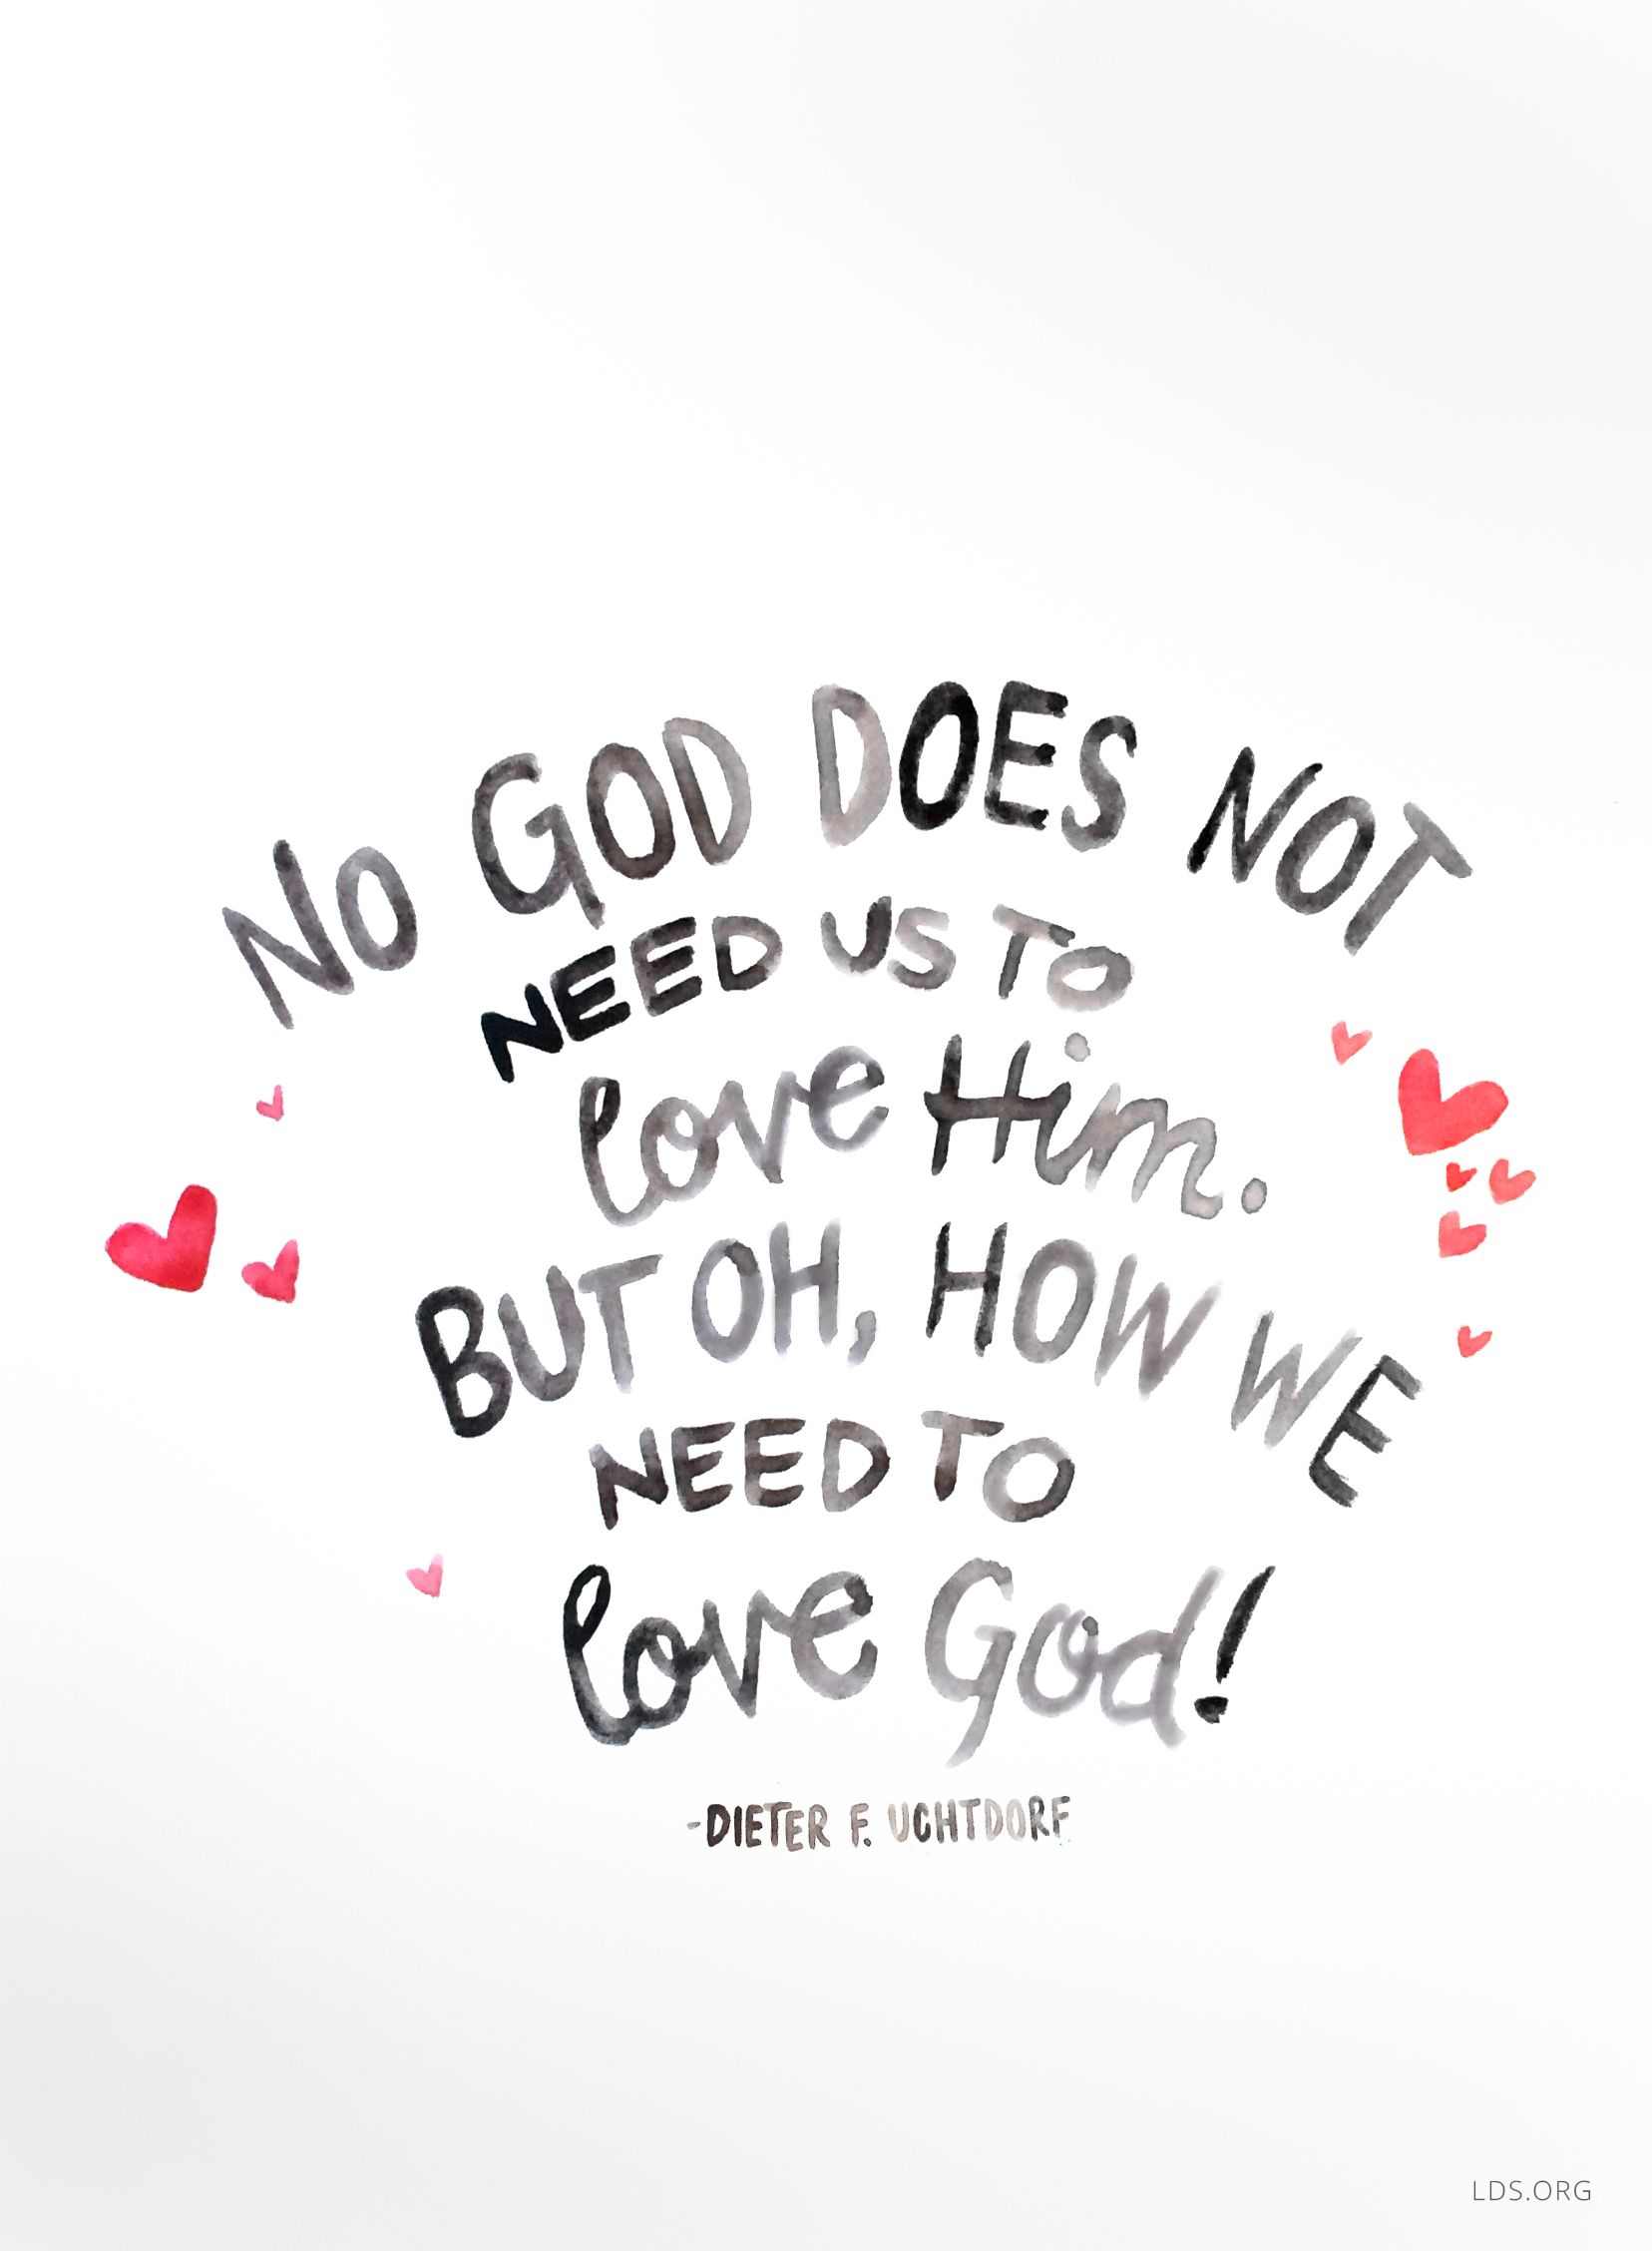 No God does not need us to love Him But oh how we need to love God —Dieter F Uchtdorf missing a ma